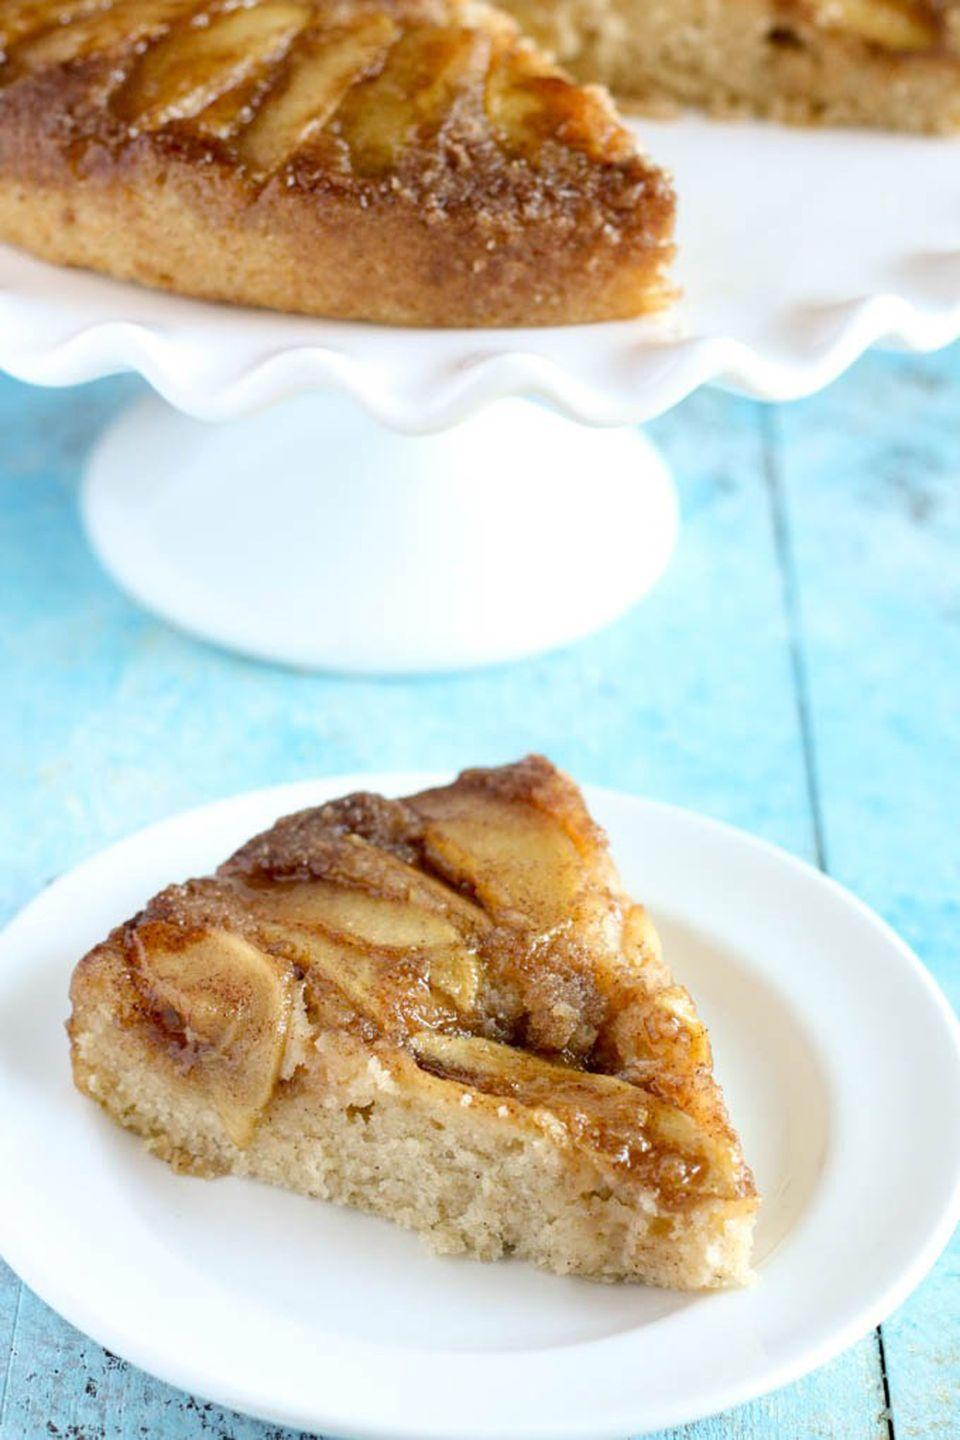 "<p>Swap out the usual pineapples for your favorite kind of apple for a moist upside-down cake.</p><p><strong>Get the recipe at <a href=""https://www.livewellbakeoften.com/caramel-apple-upside-down-cake/"" rel=""nofollow noopener"" target=""_blank"" data-ylk=""slk:Live Well Bake Often"" class=""link rapid-noclick-resp"">Live Well Bake Often</a>.</strong></p><p><a class=""link rapid-noclick-resp"" href=""https://www.amazon.com/Now-Designs-Cake-Stand-Aqua/dp/B00IRU6Q1C?th=1&tag=syn-yahoo-20&ascsubtag=%5Bartid%7C10050.g.650%5Bsrc%7Cyahoo-us"" rel=""nofollow noopener"" target=""_blank"" data-ylk=""slk:SHOP CAKE STANDS"">SHOP CAKE STANDS</a><br></p>"